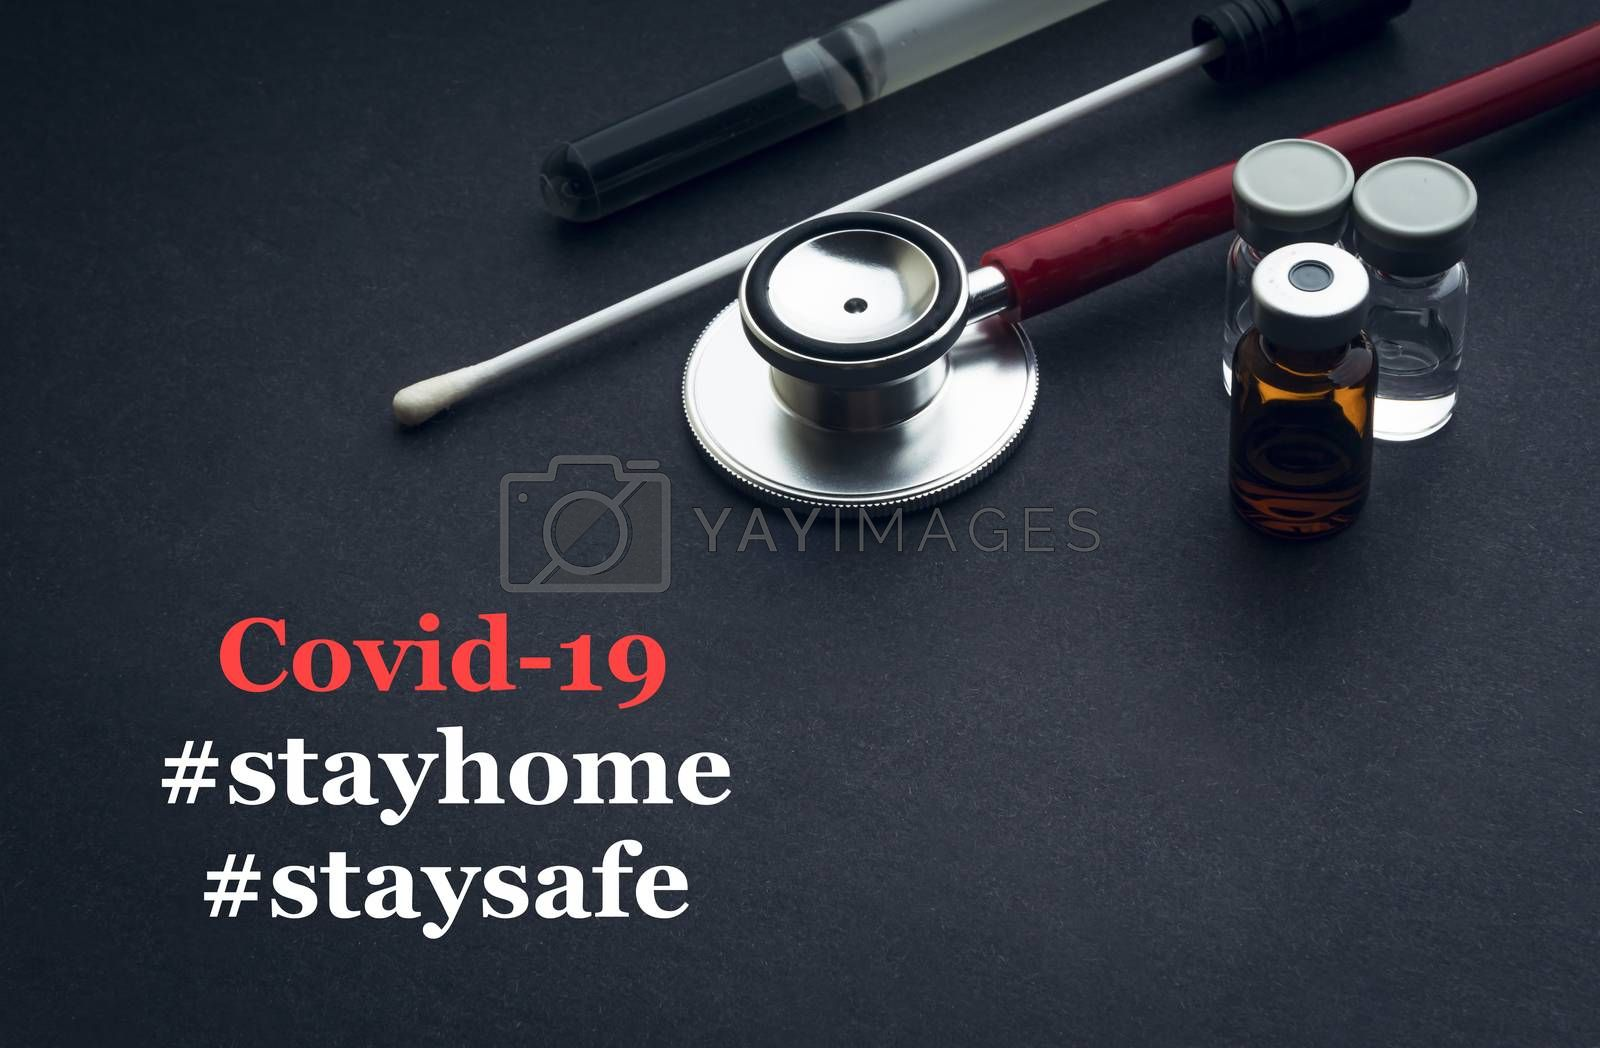 COVID-19 or CORONAVIRUS STAY HOME STAY SAFE text with stethoscope, medical swab and vial on black background. Covid-19 or Coronavirus concept.